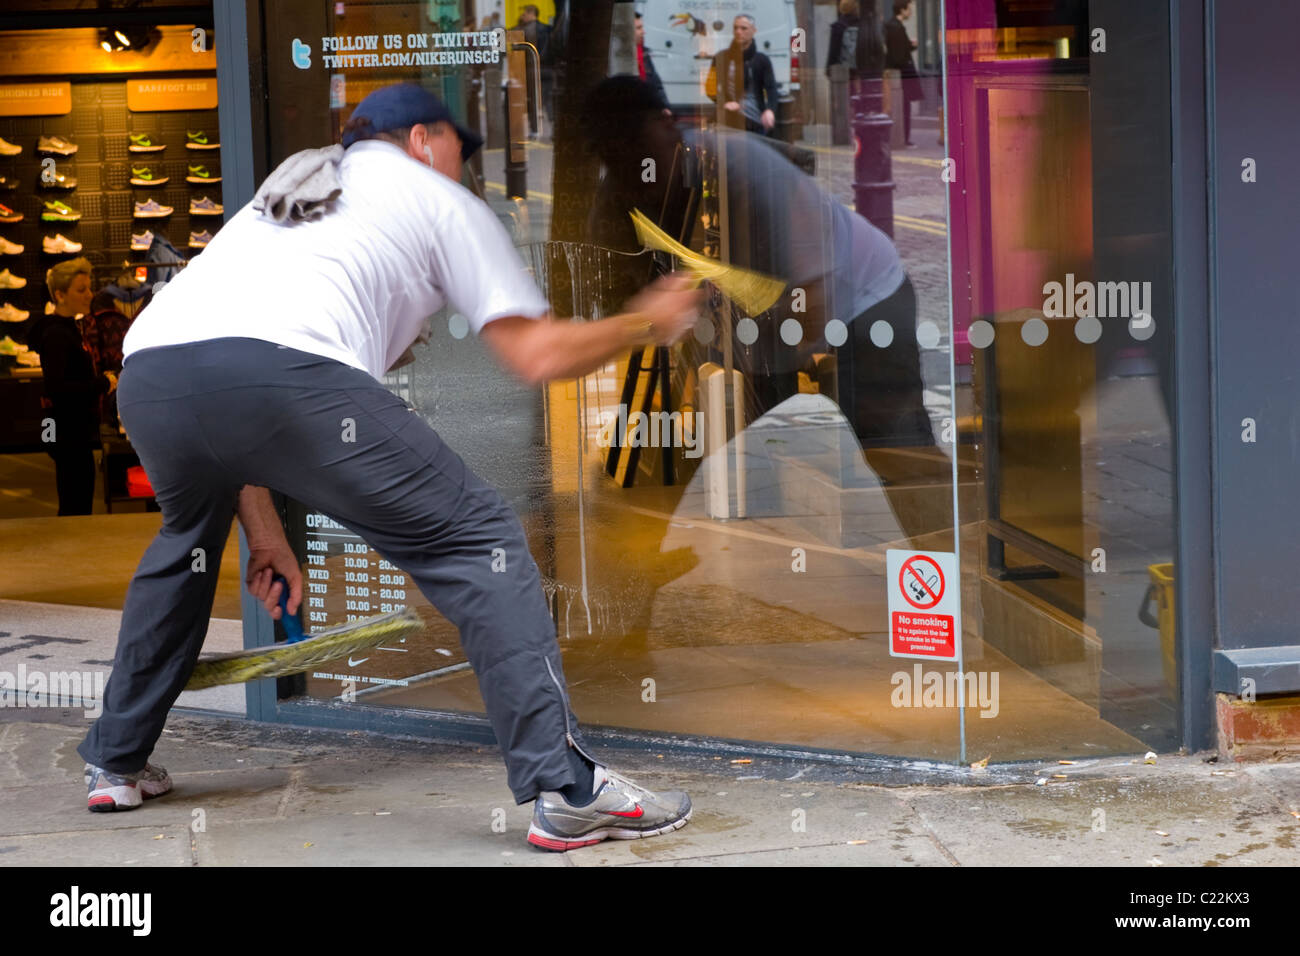 Covent Garden , middle aged man in baseball cap cleans shop or store window with sponge & squeegee motion blur - Stock Image